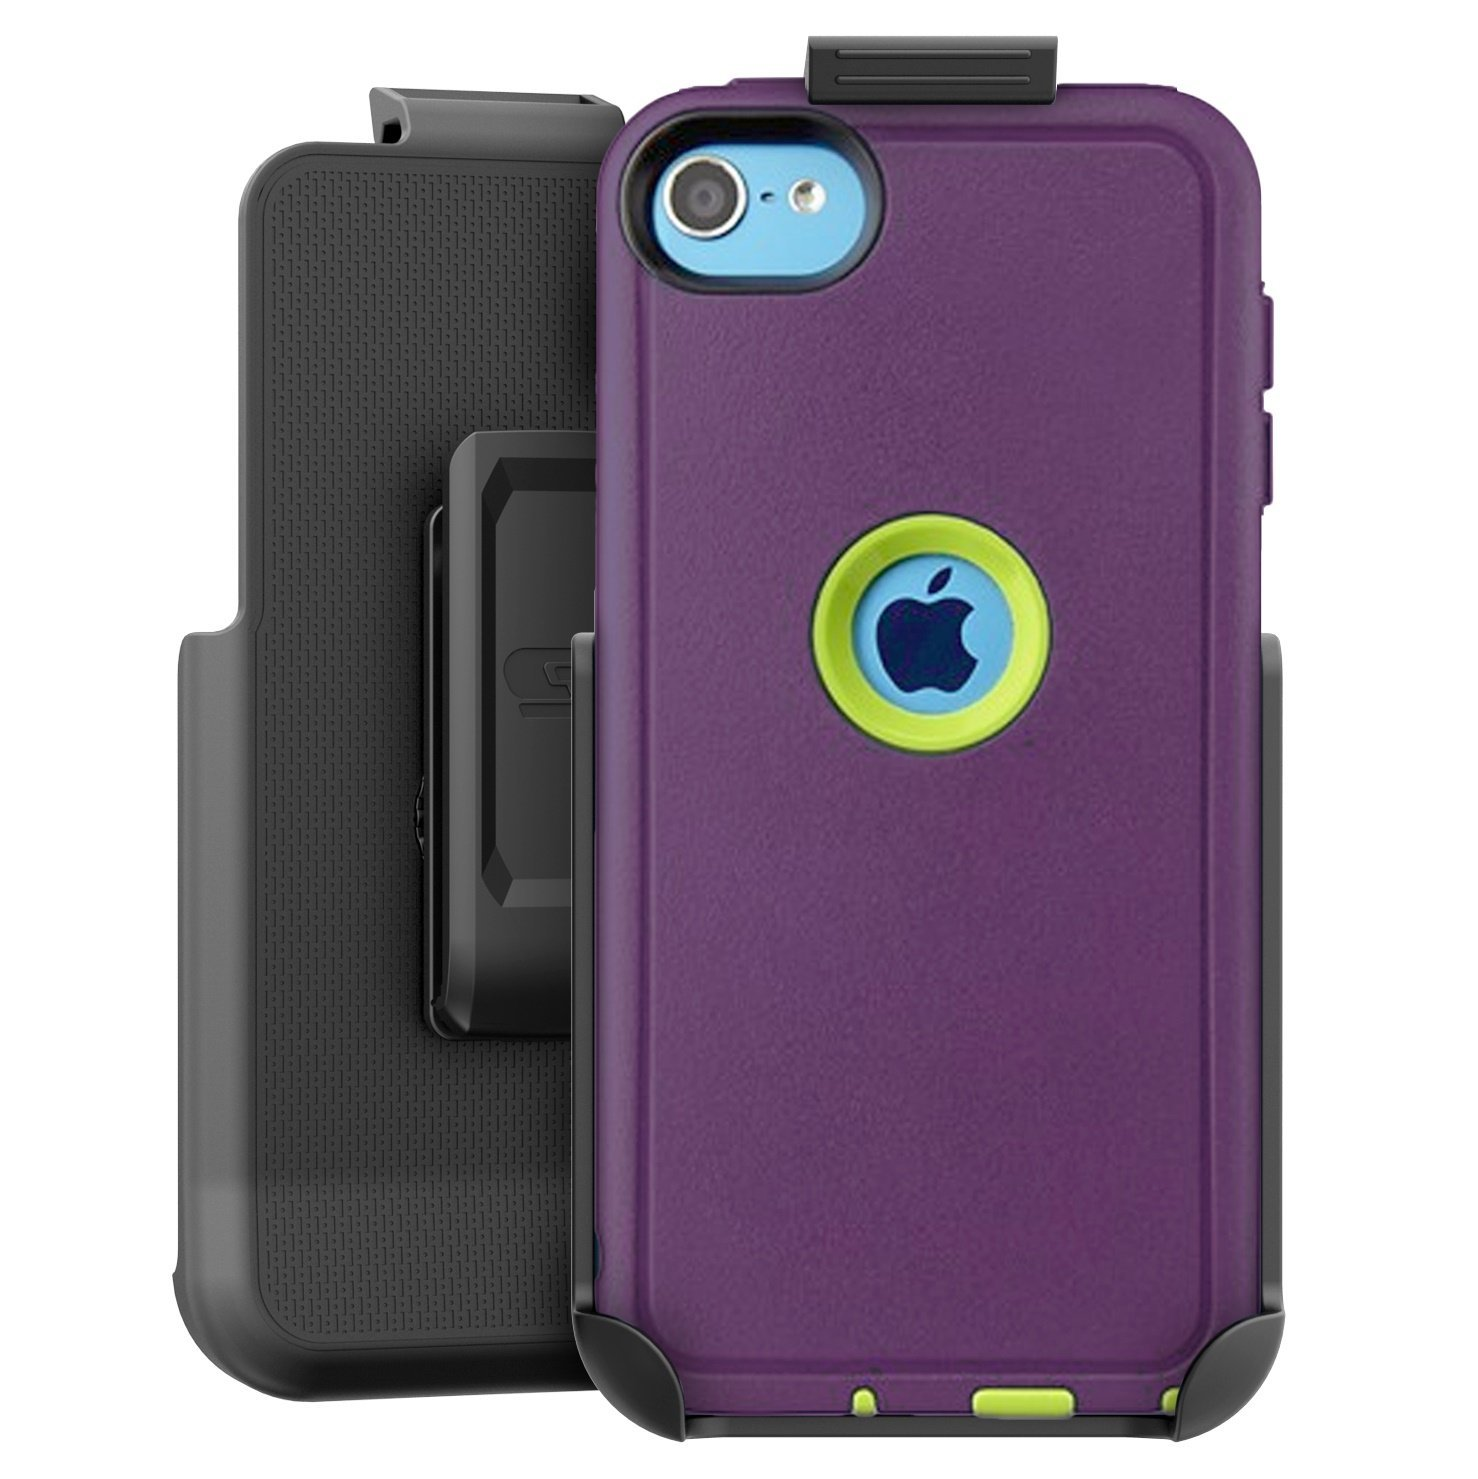 premium selection 89d58 207e0 Belt Clip for Otterbox Defender Case - iPod Touch 5G and 6G (case is not  included) (By Encased)